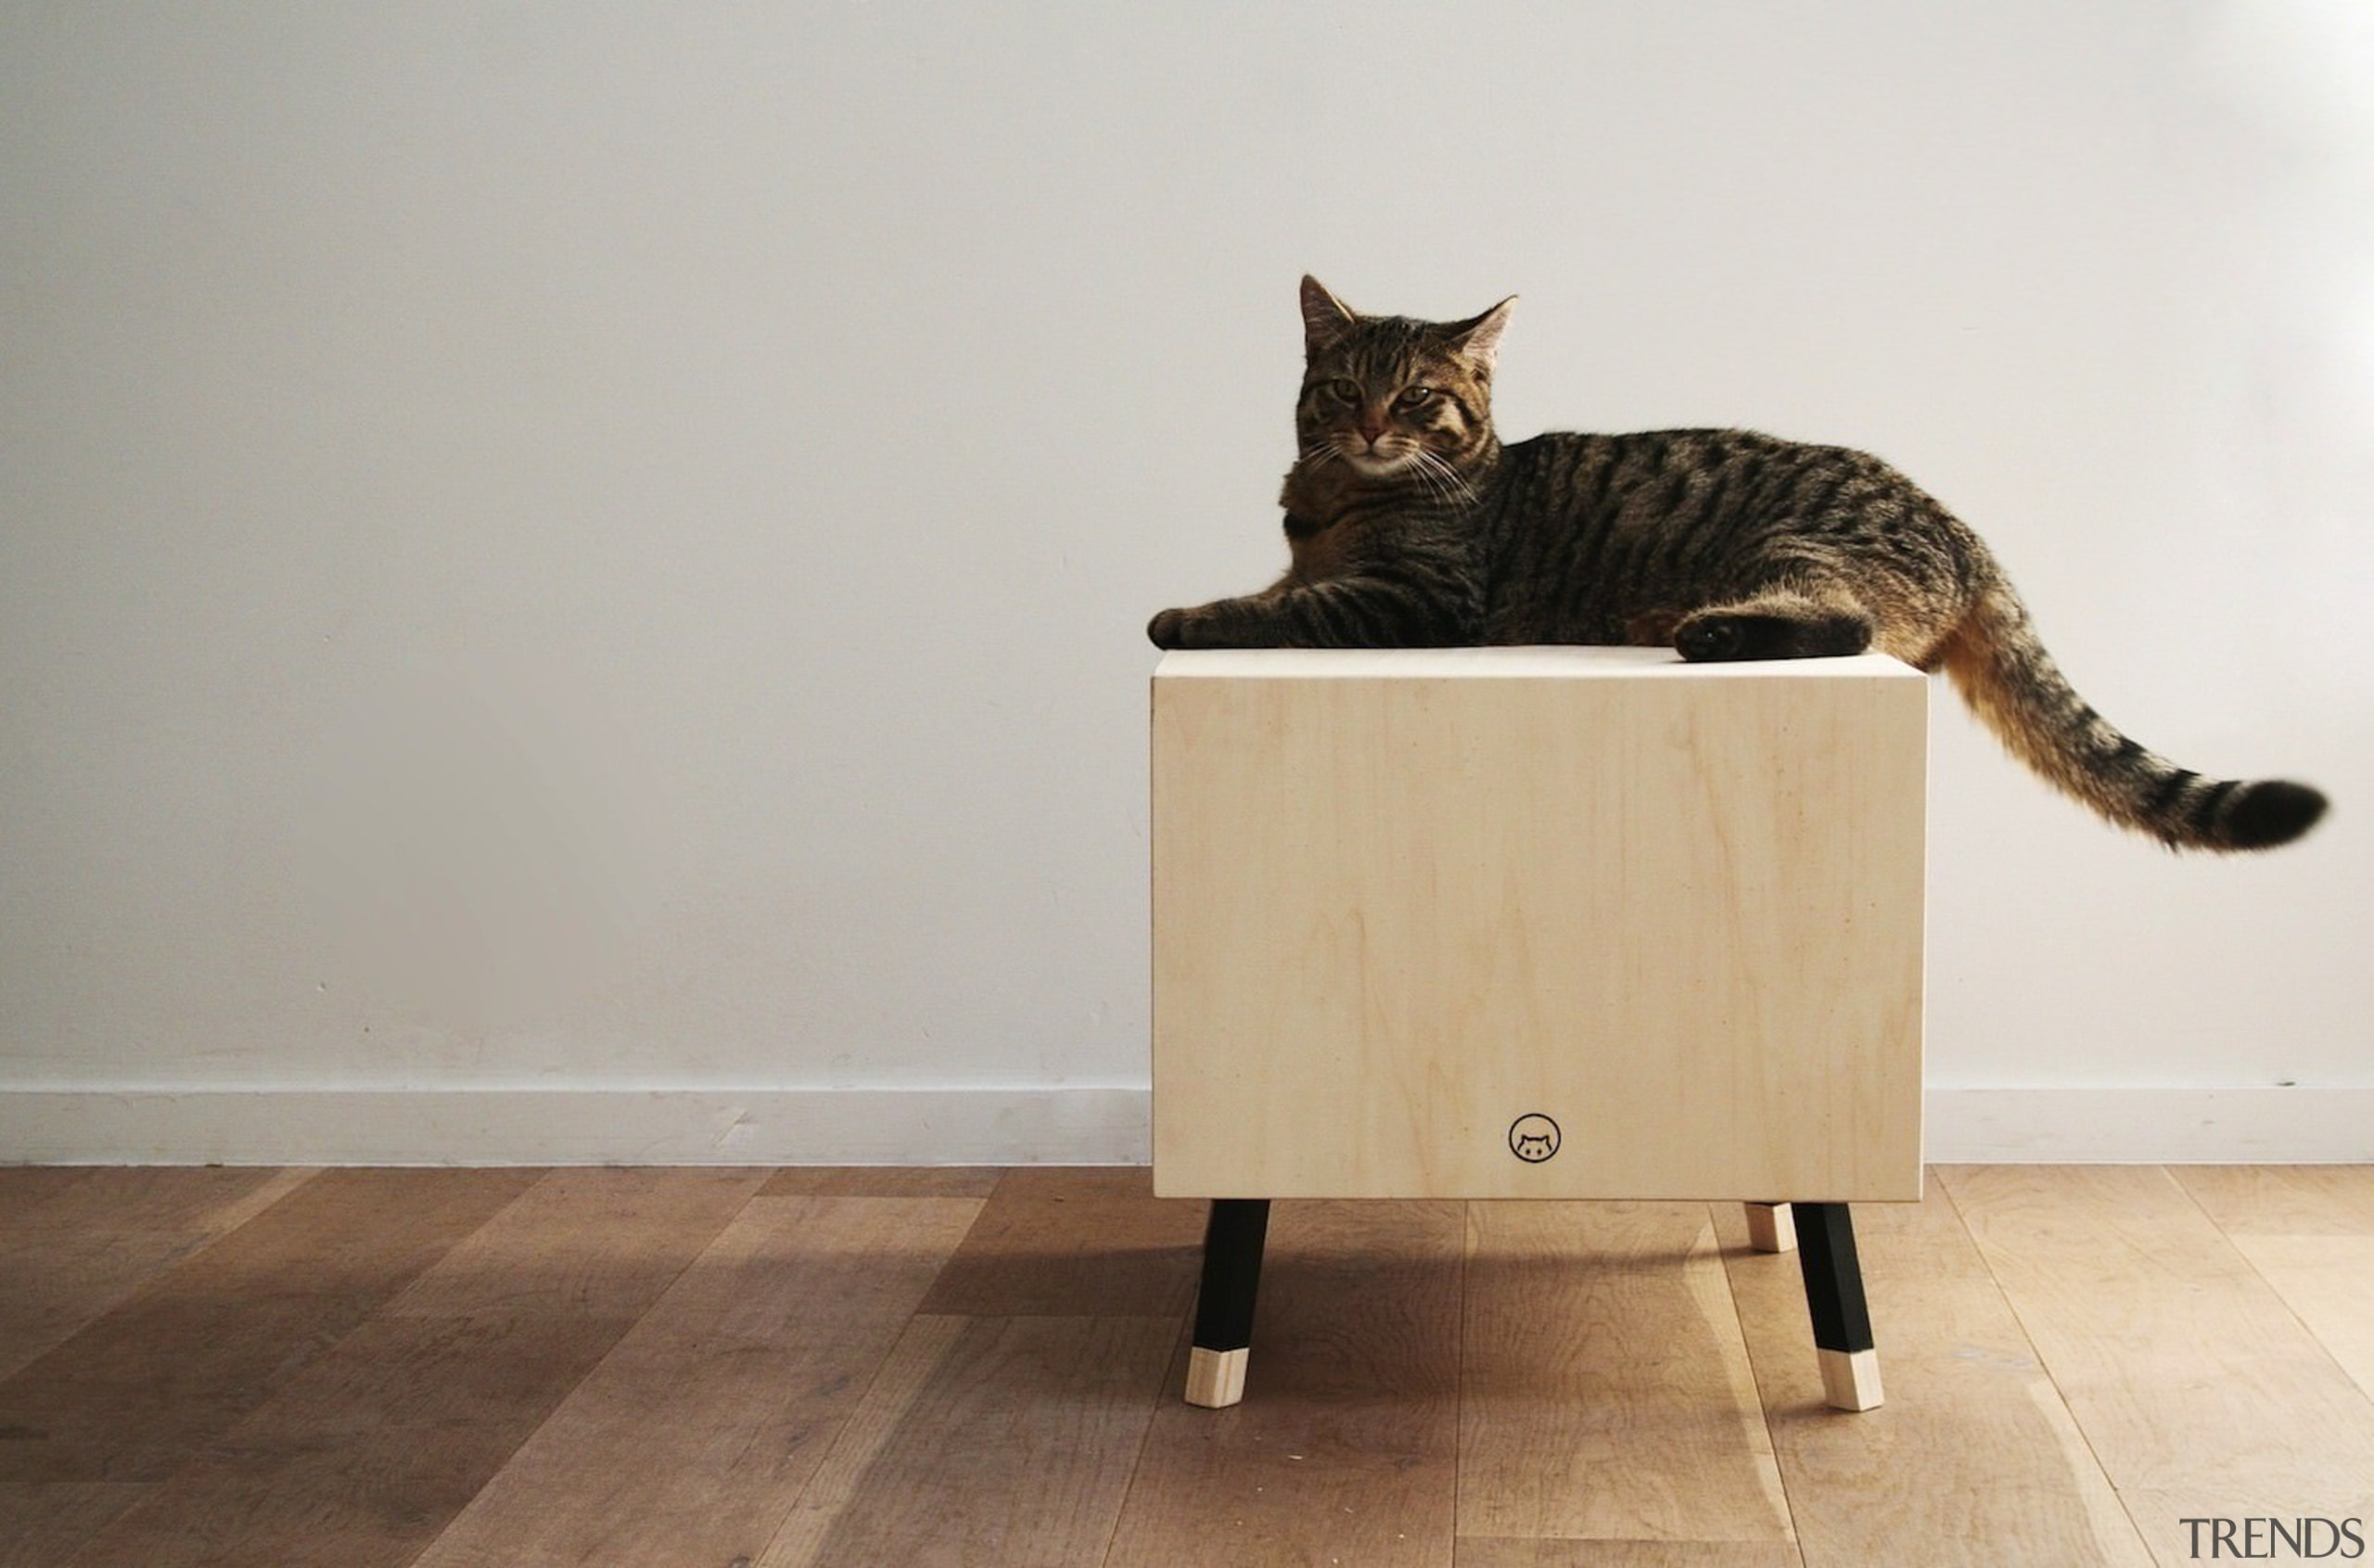 Designed by Krab - The table is small cat, cat like mammal, chair, floor, flooring, furniture, small to medium sized cats, table, whiskers, wood, gray